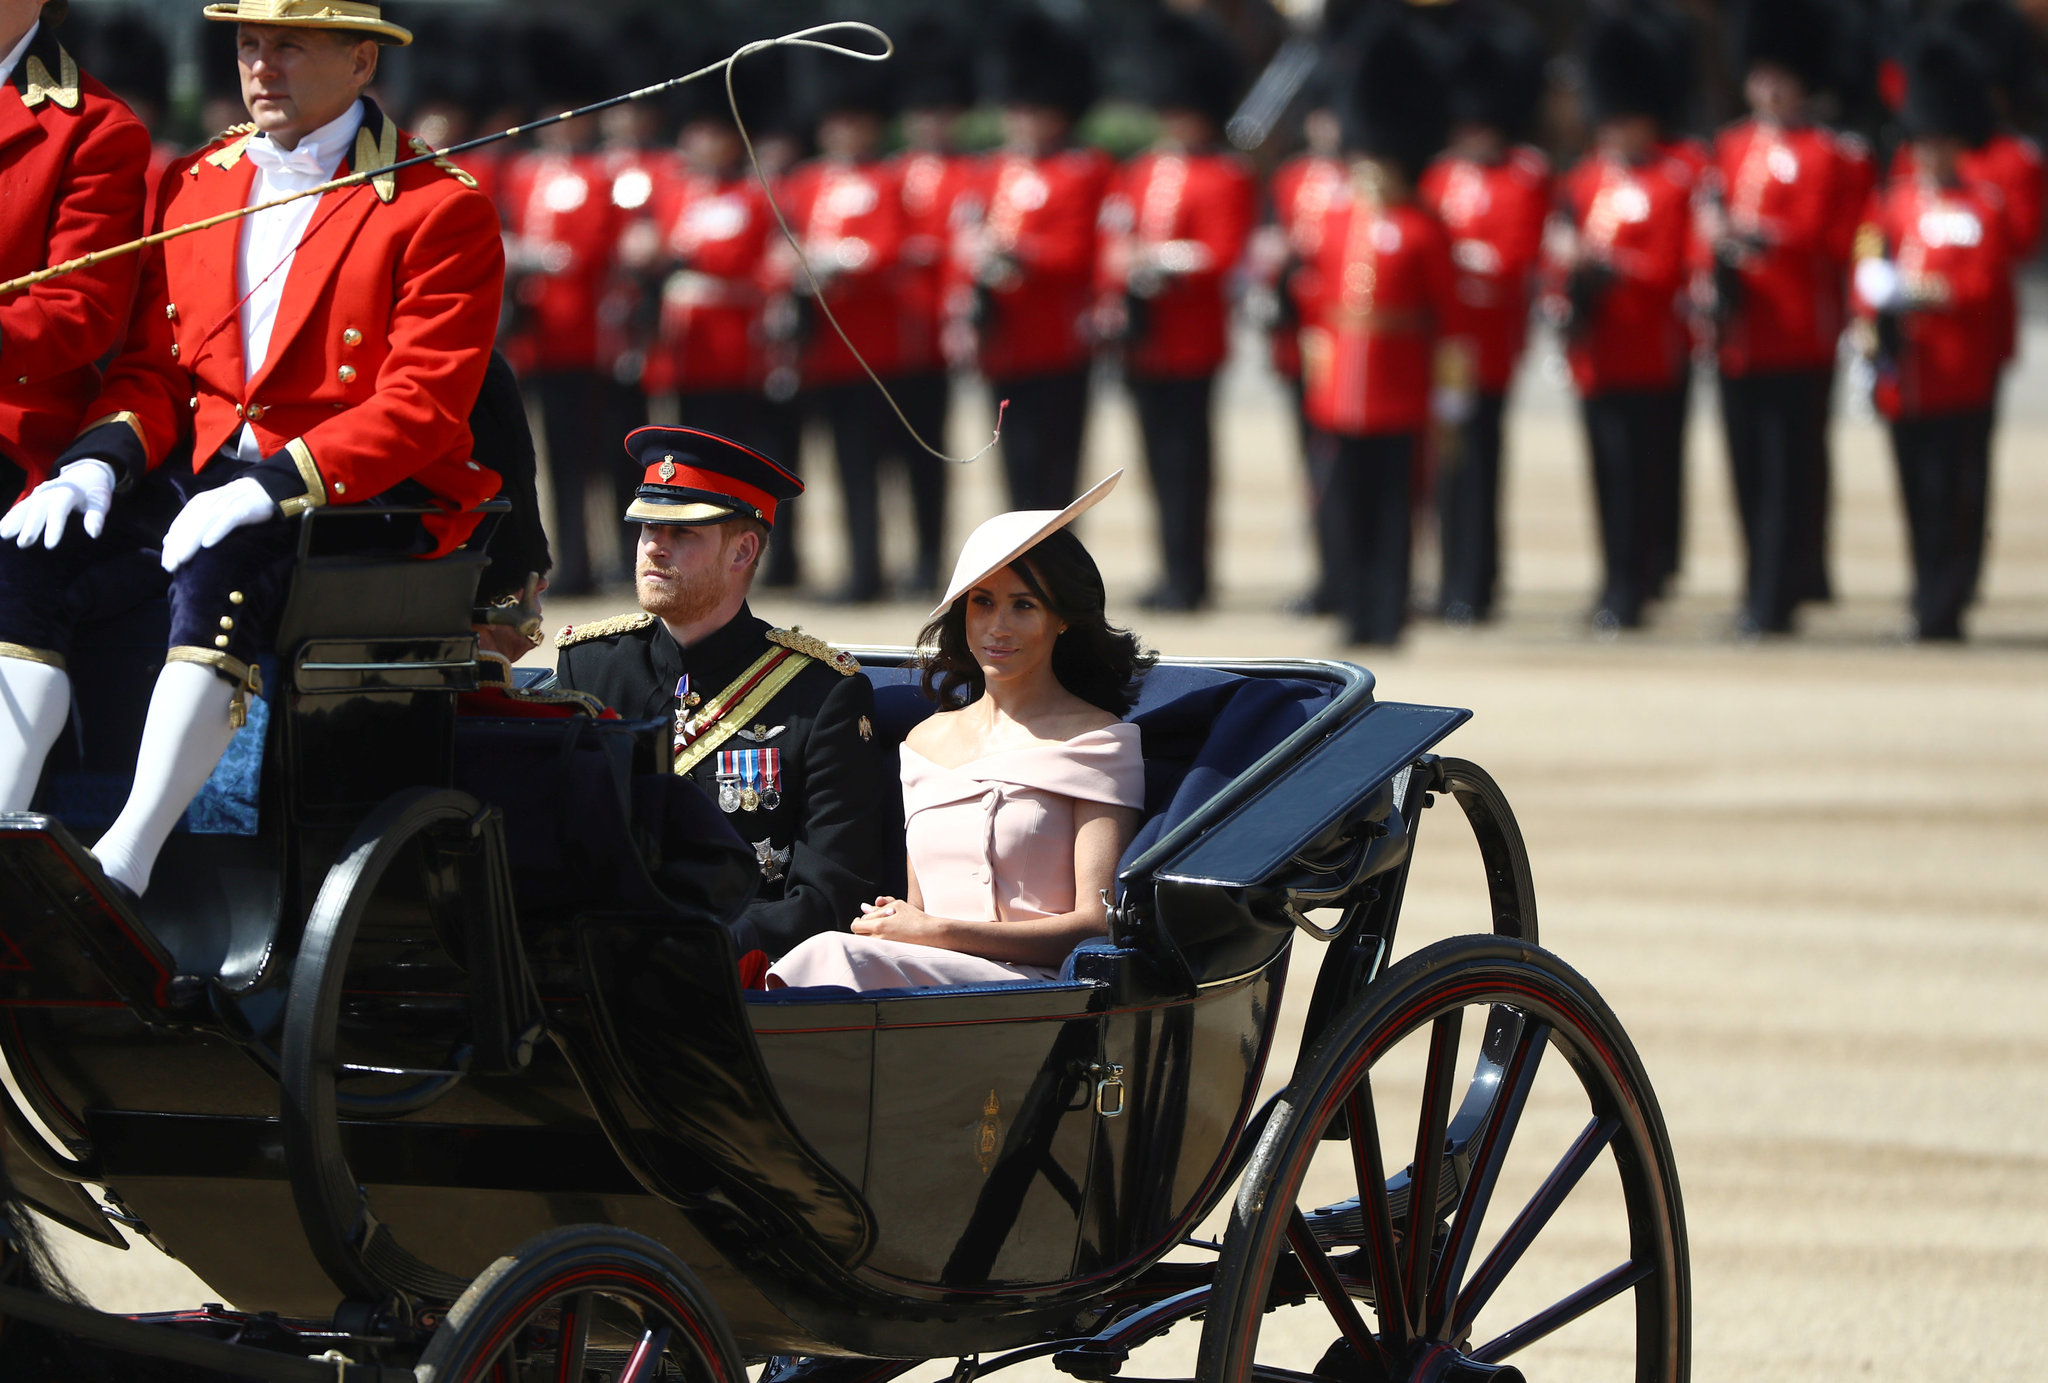 Meghan y Harry en el desfile militar de Trooping the Colour